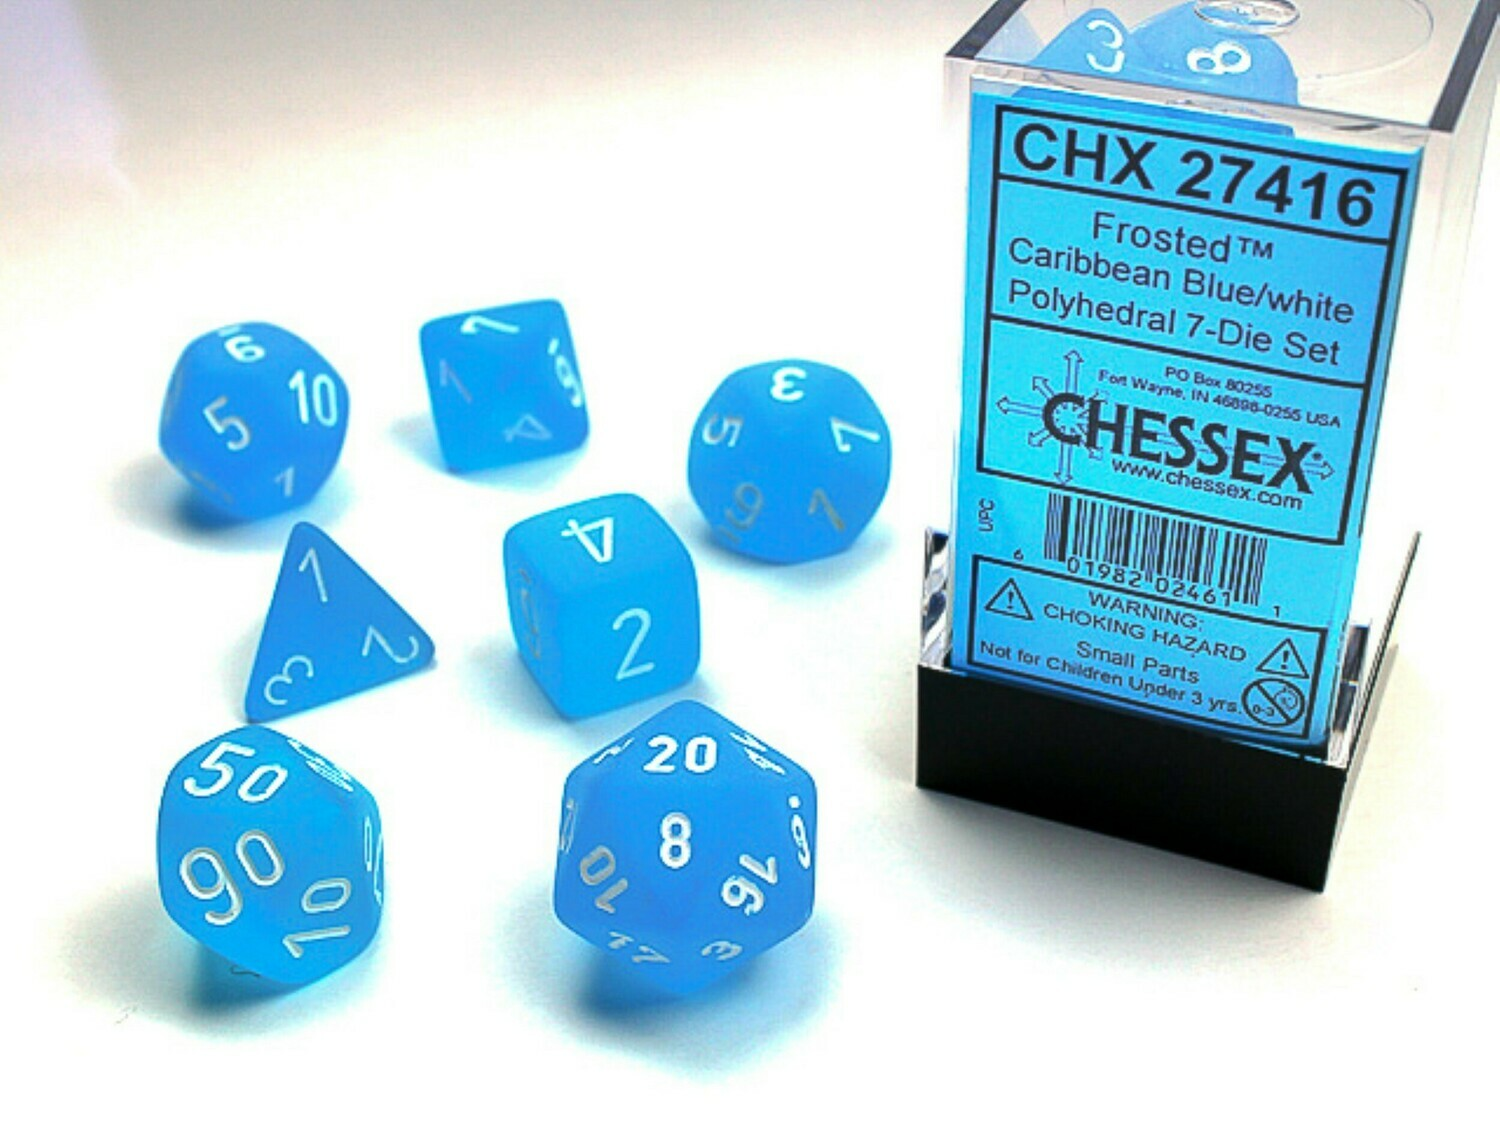 Chessex 16mm 7 Die Polyhedral Dice Set - Frosted Carribean Blue with White - RPG Tabletop Game